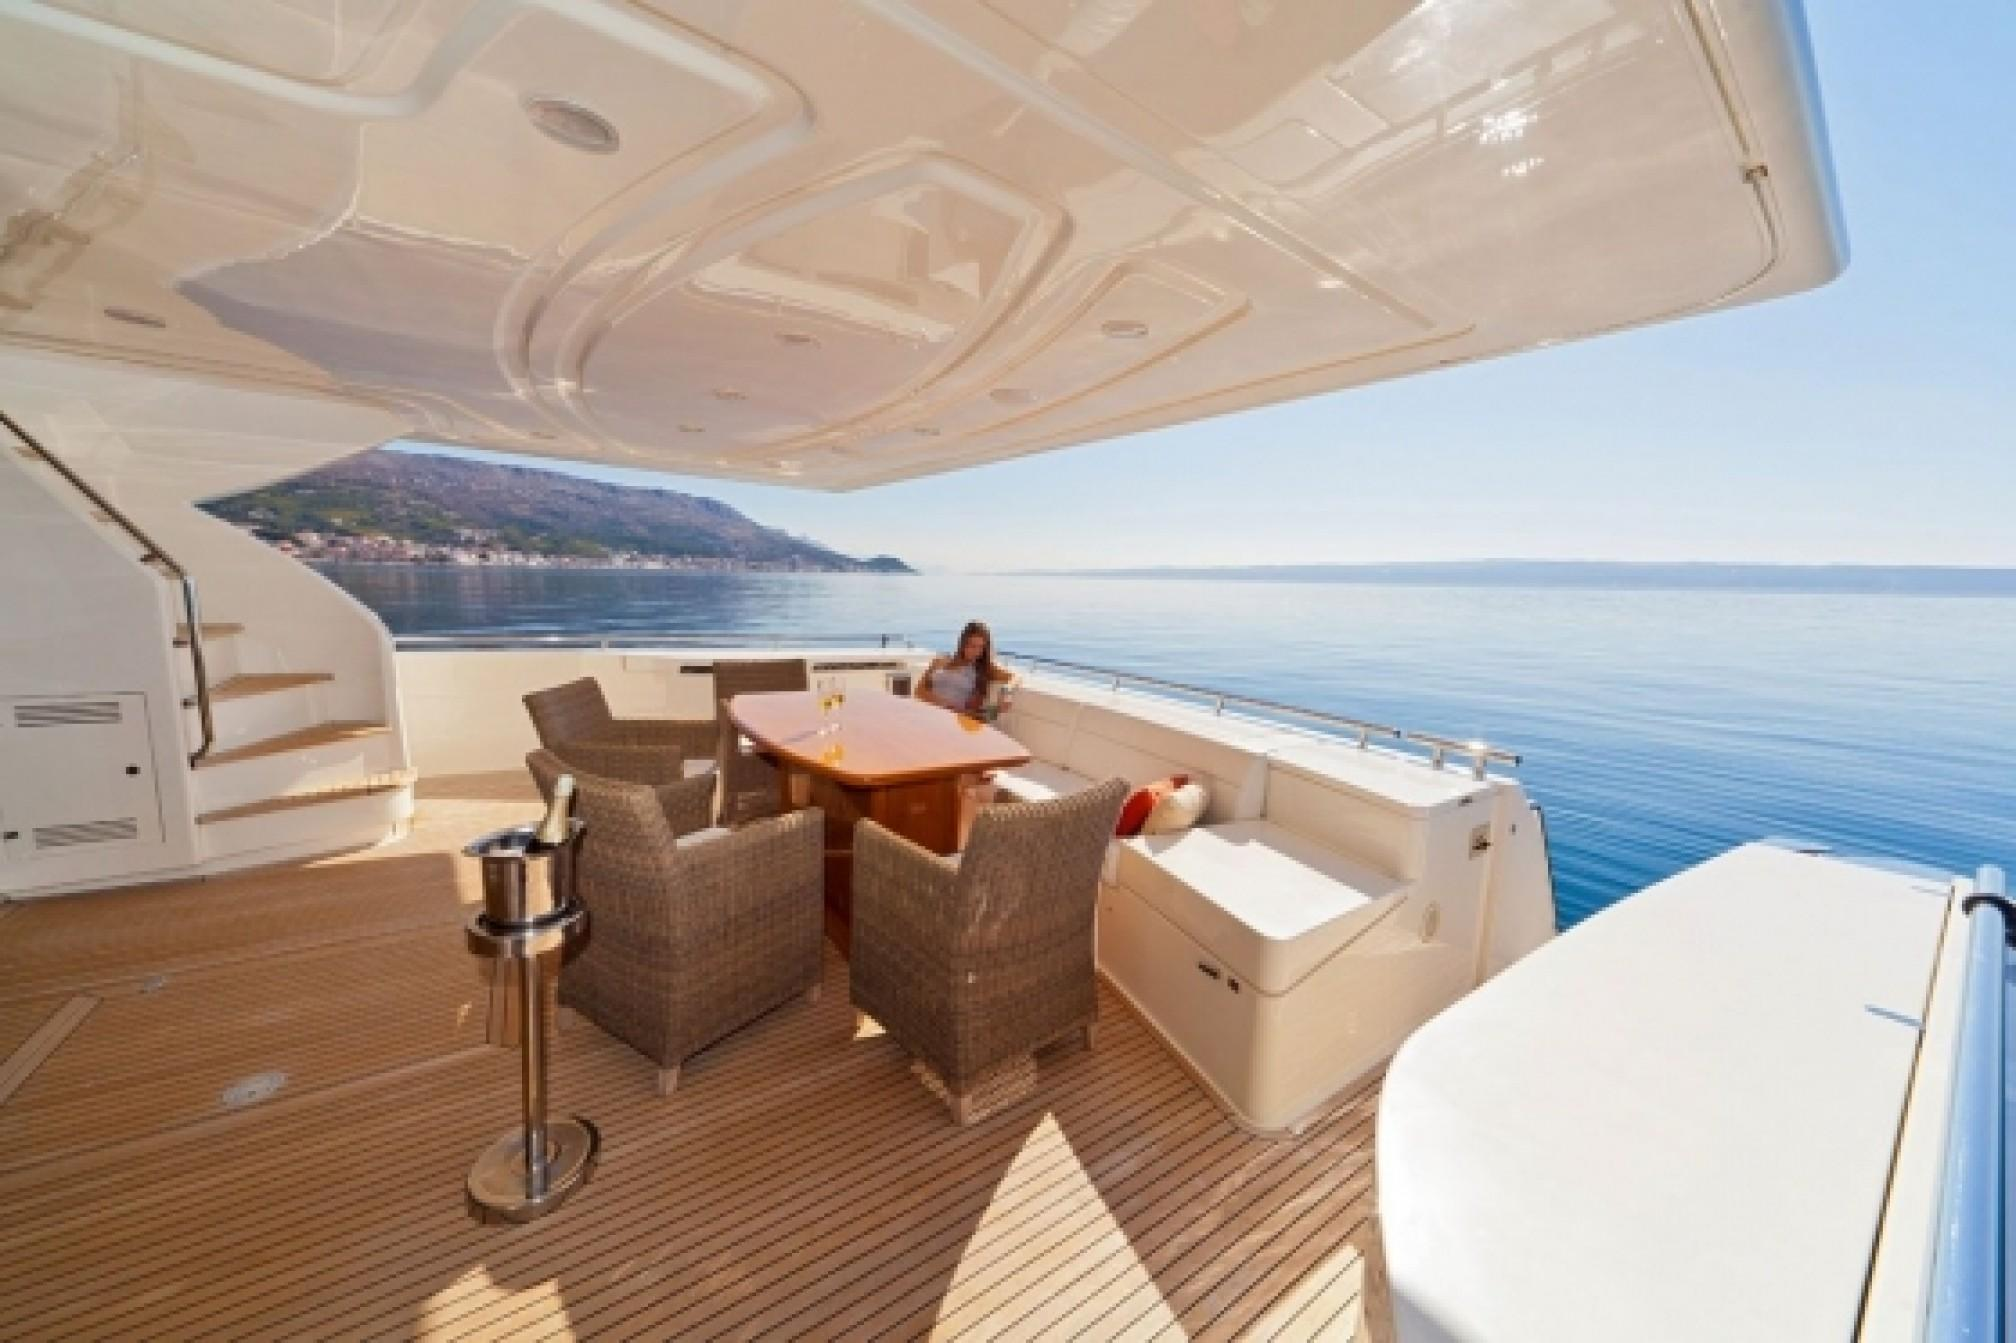 Ferretti 780 charter yacht outdoors